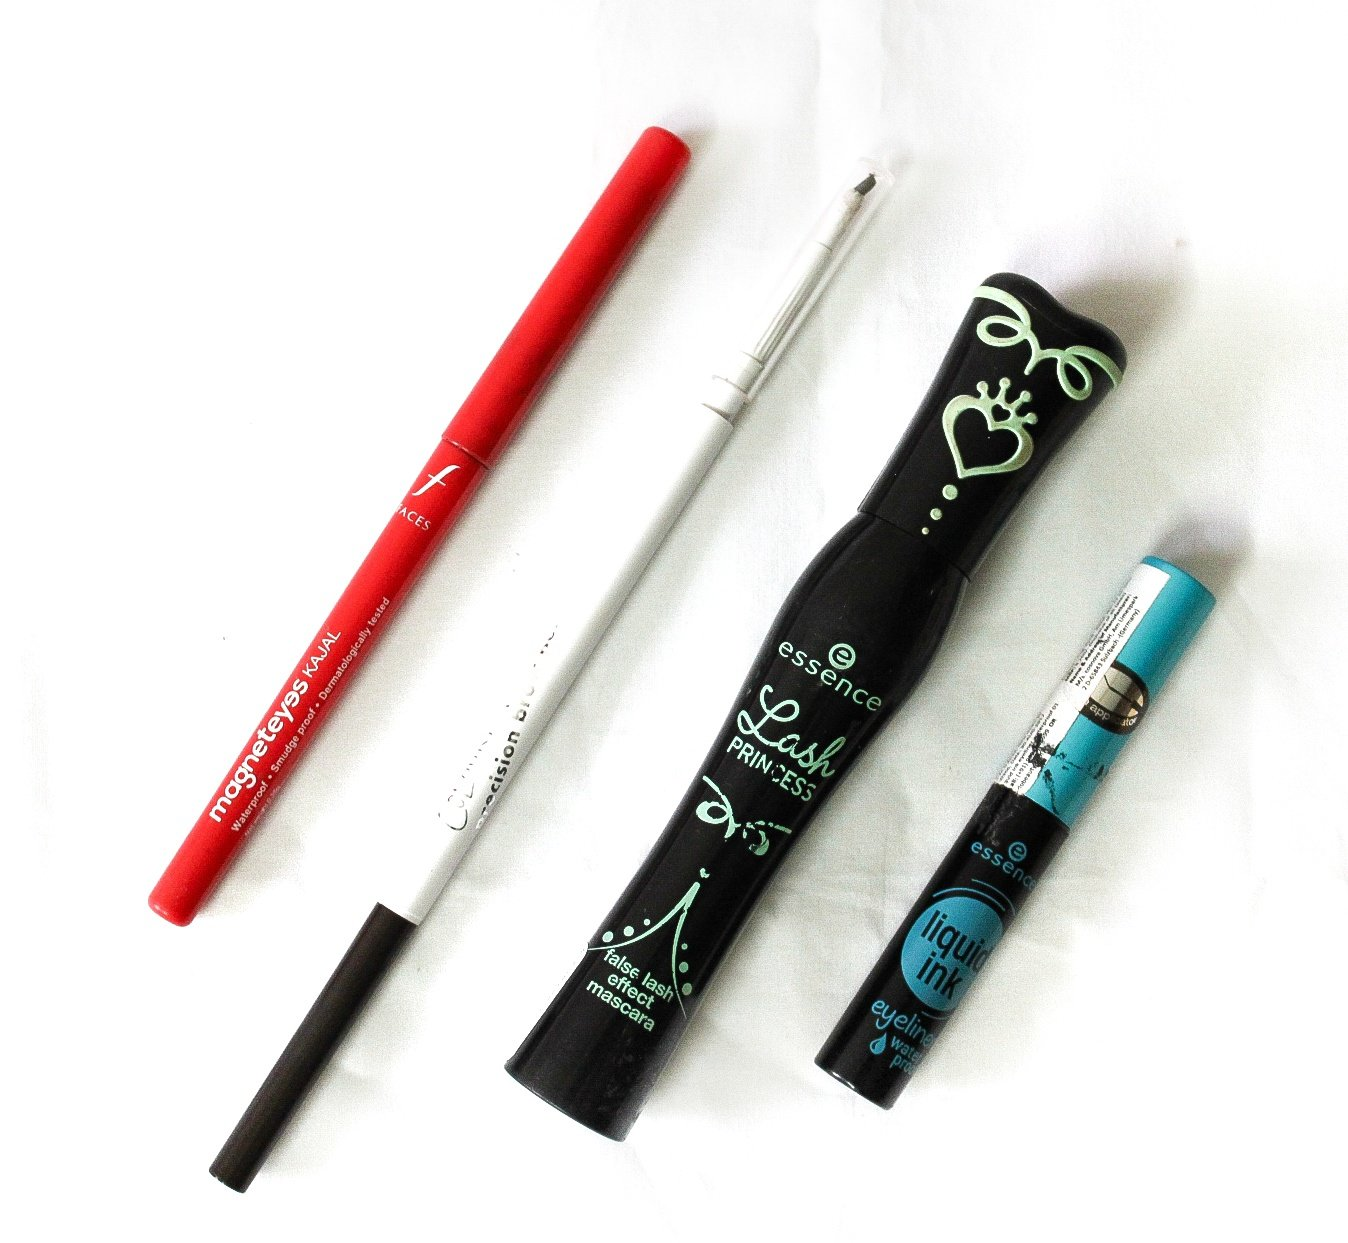 Eye Makeup Products used to create the look